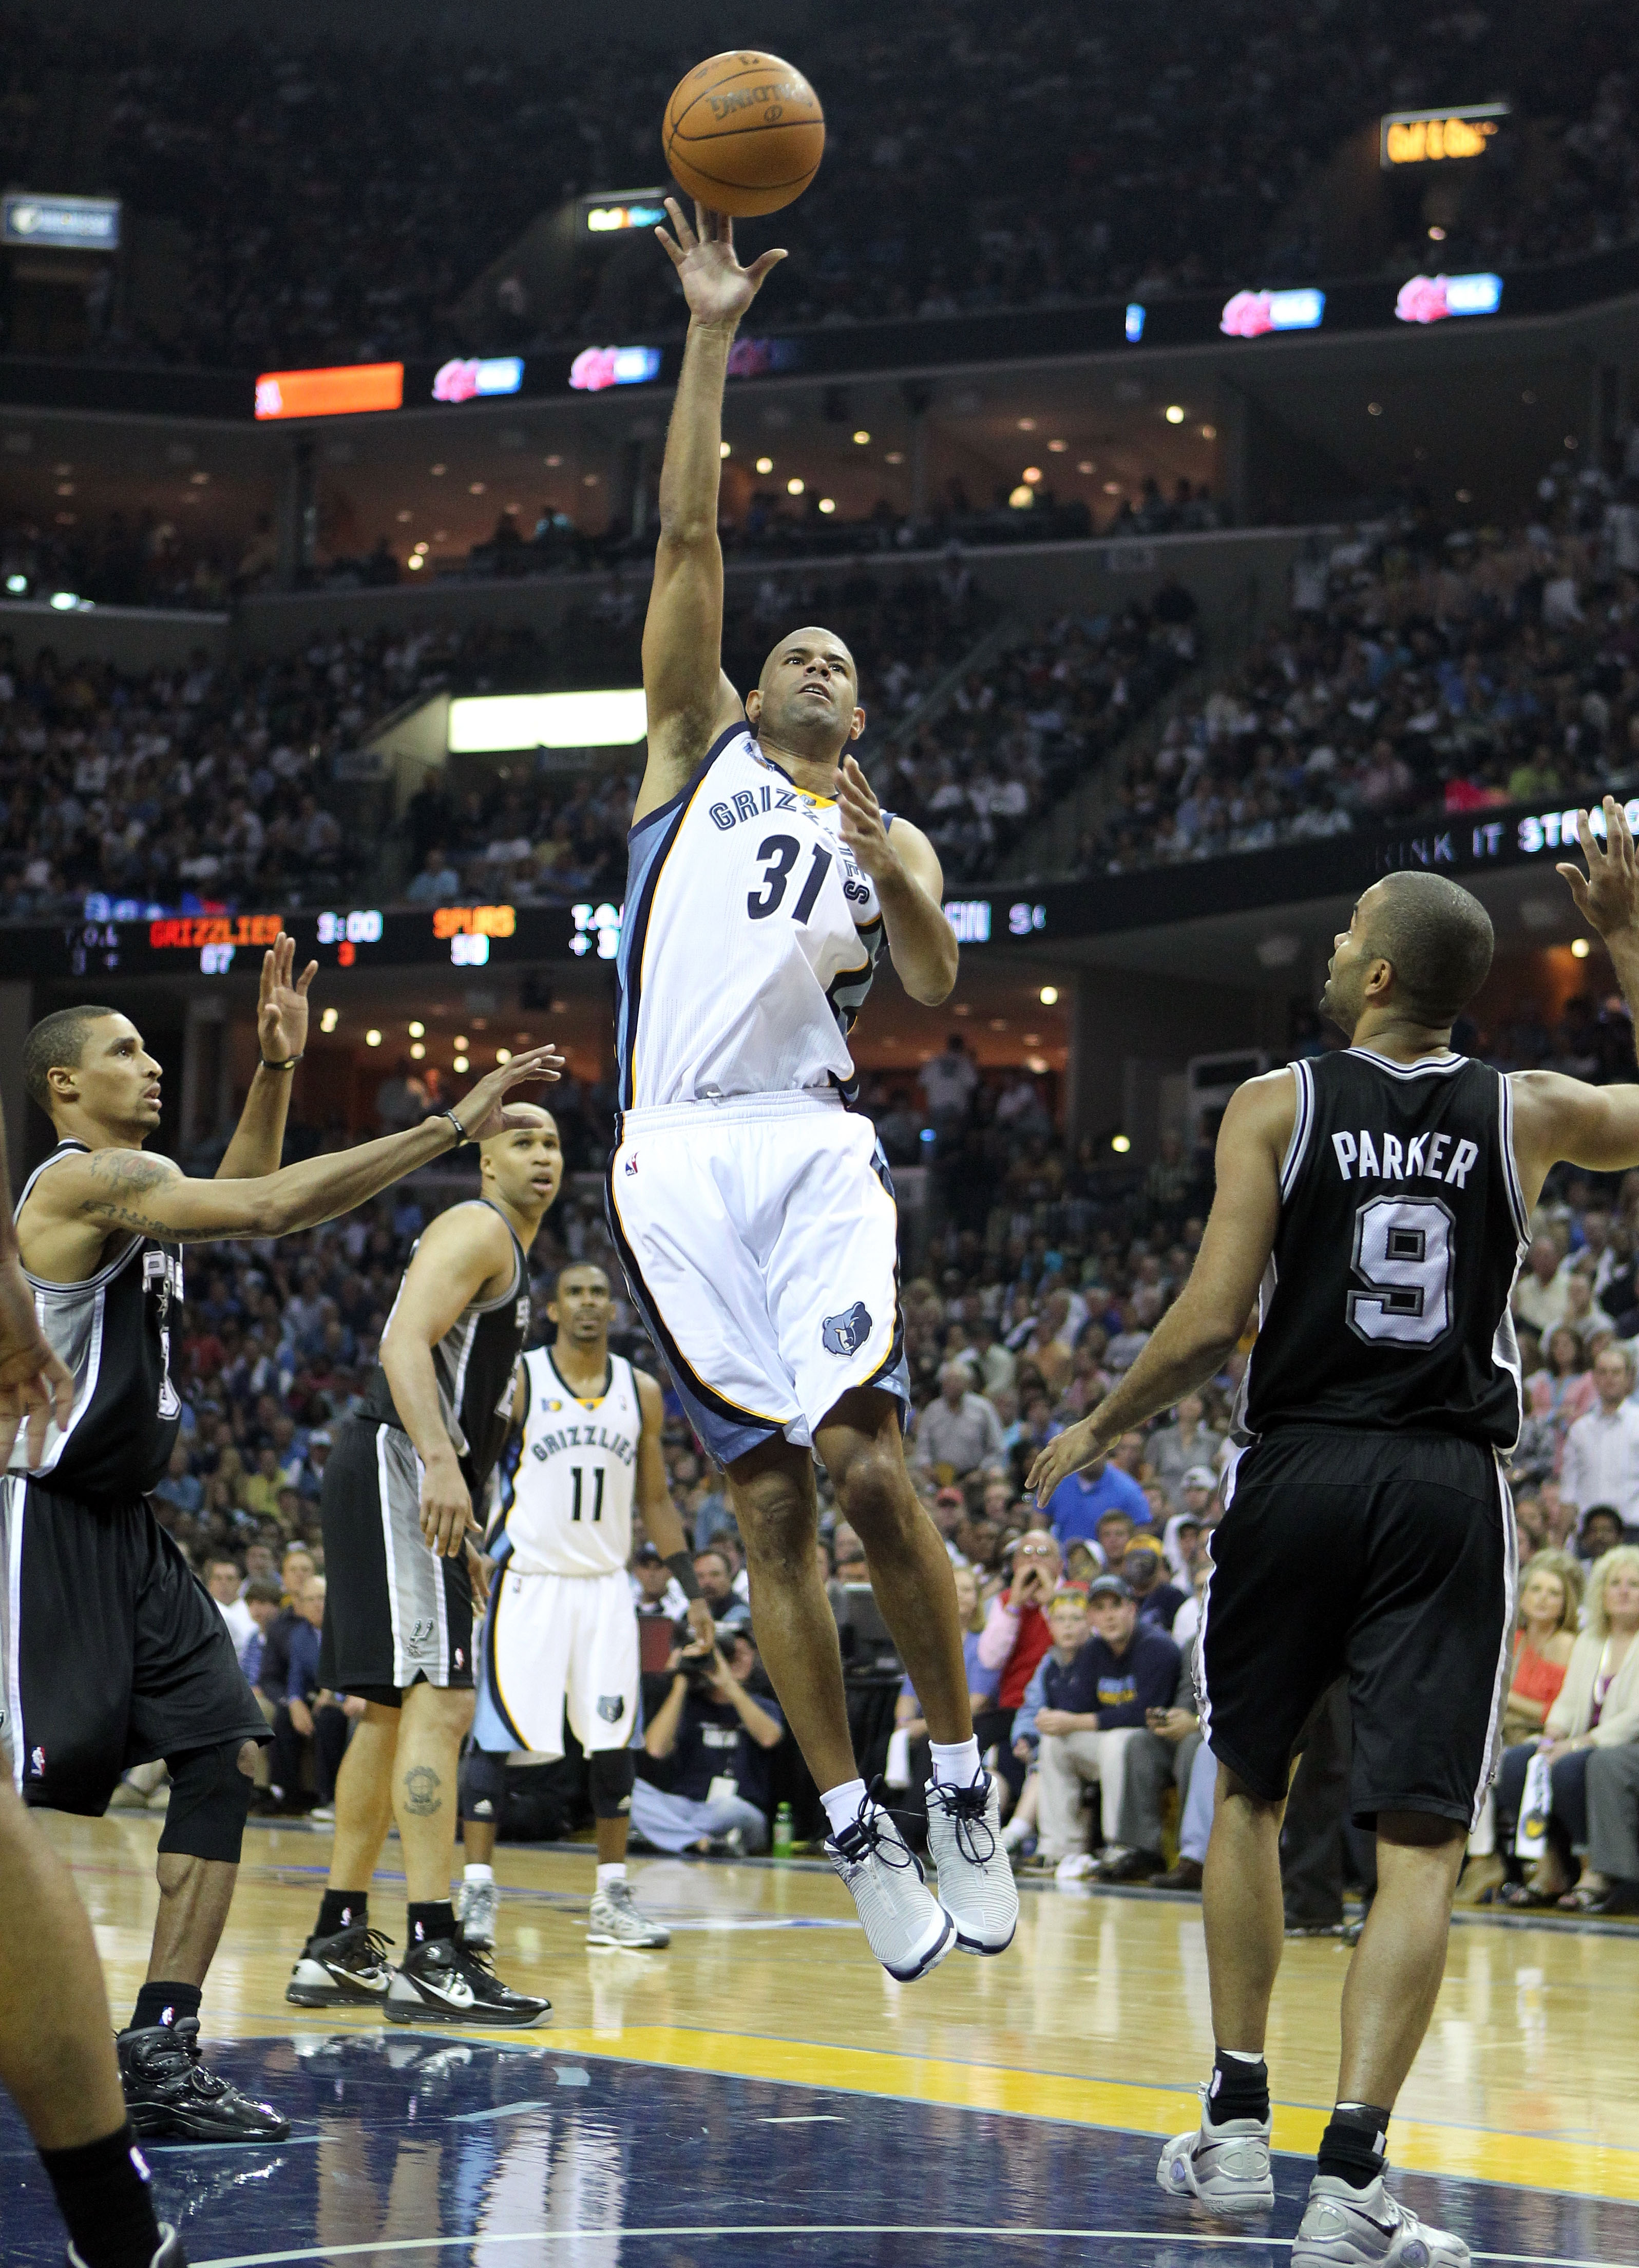 MEMPHIS, TN - APRIL 23: Shane Battier #31 of the  Memphis Grizzlies shoots the ball during the game against the San Antonio Spurs in Game three of the Western Conference Quarterfinals in the 2011 NBA Playoffs at FedExForum on April 23, 2011 in Memphis, Te